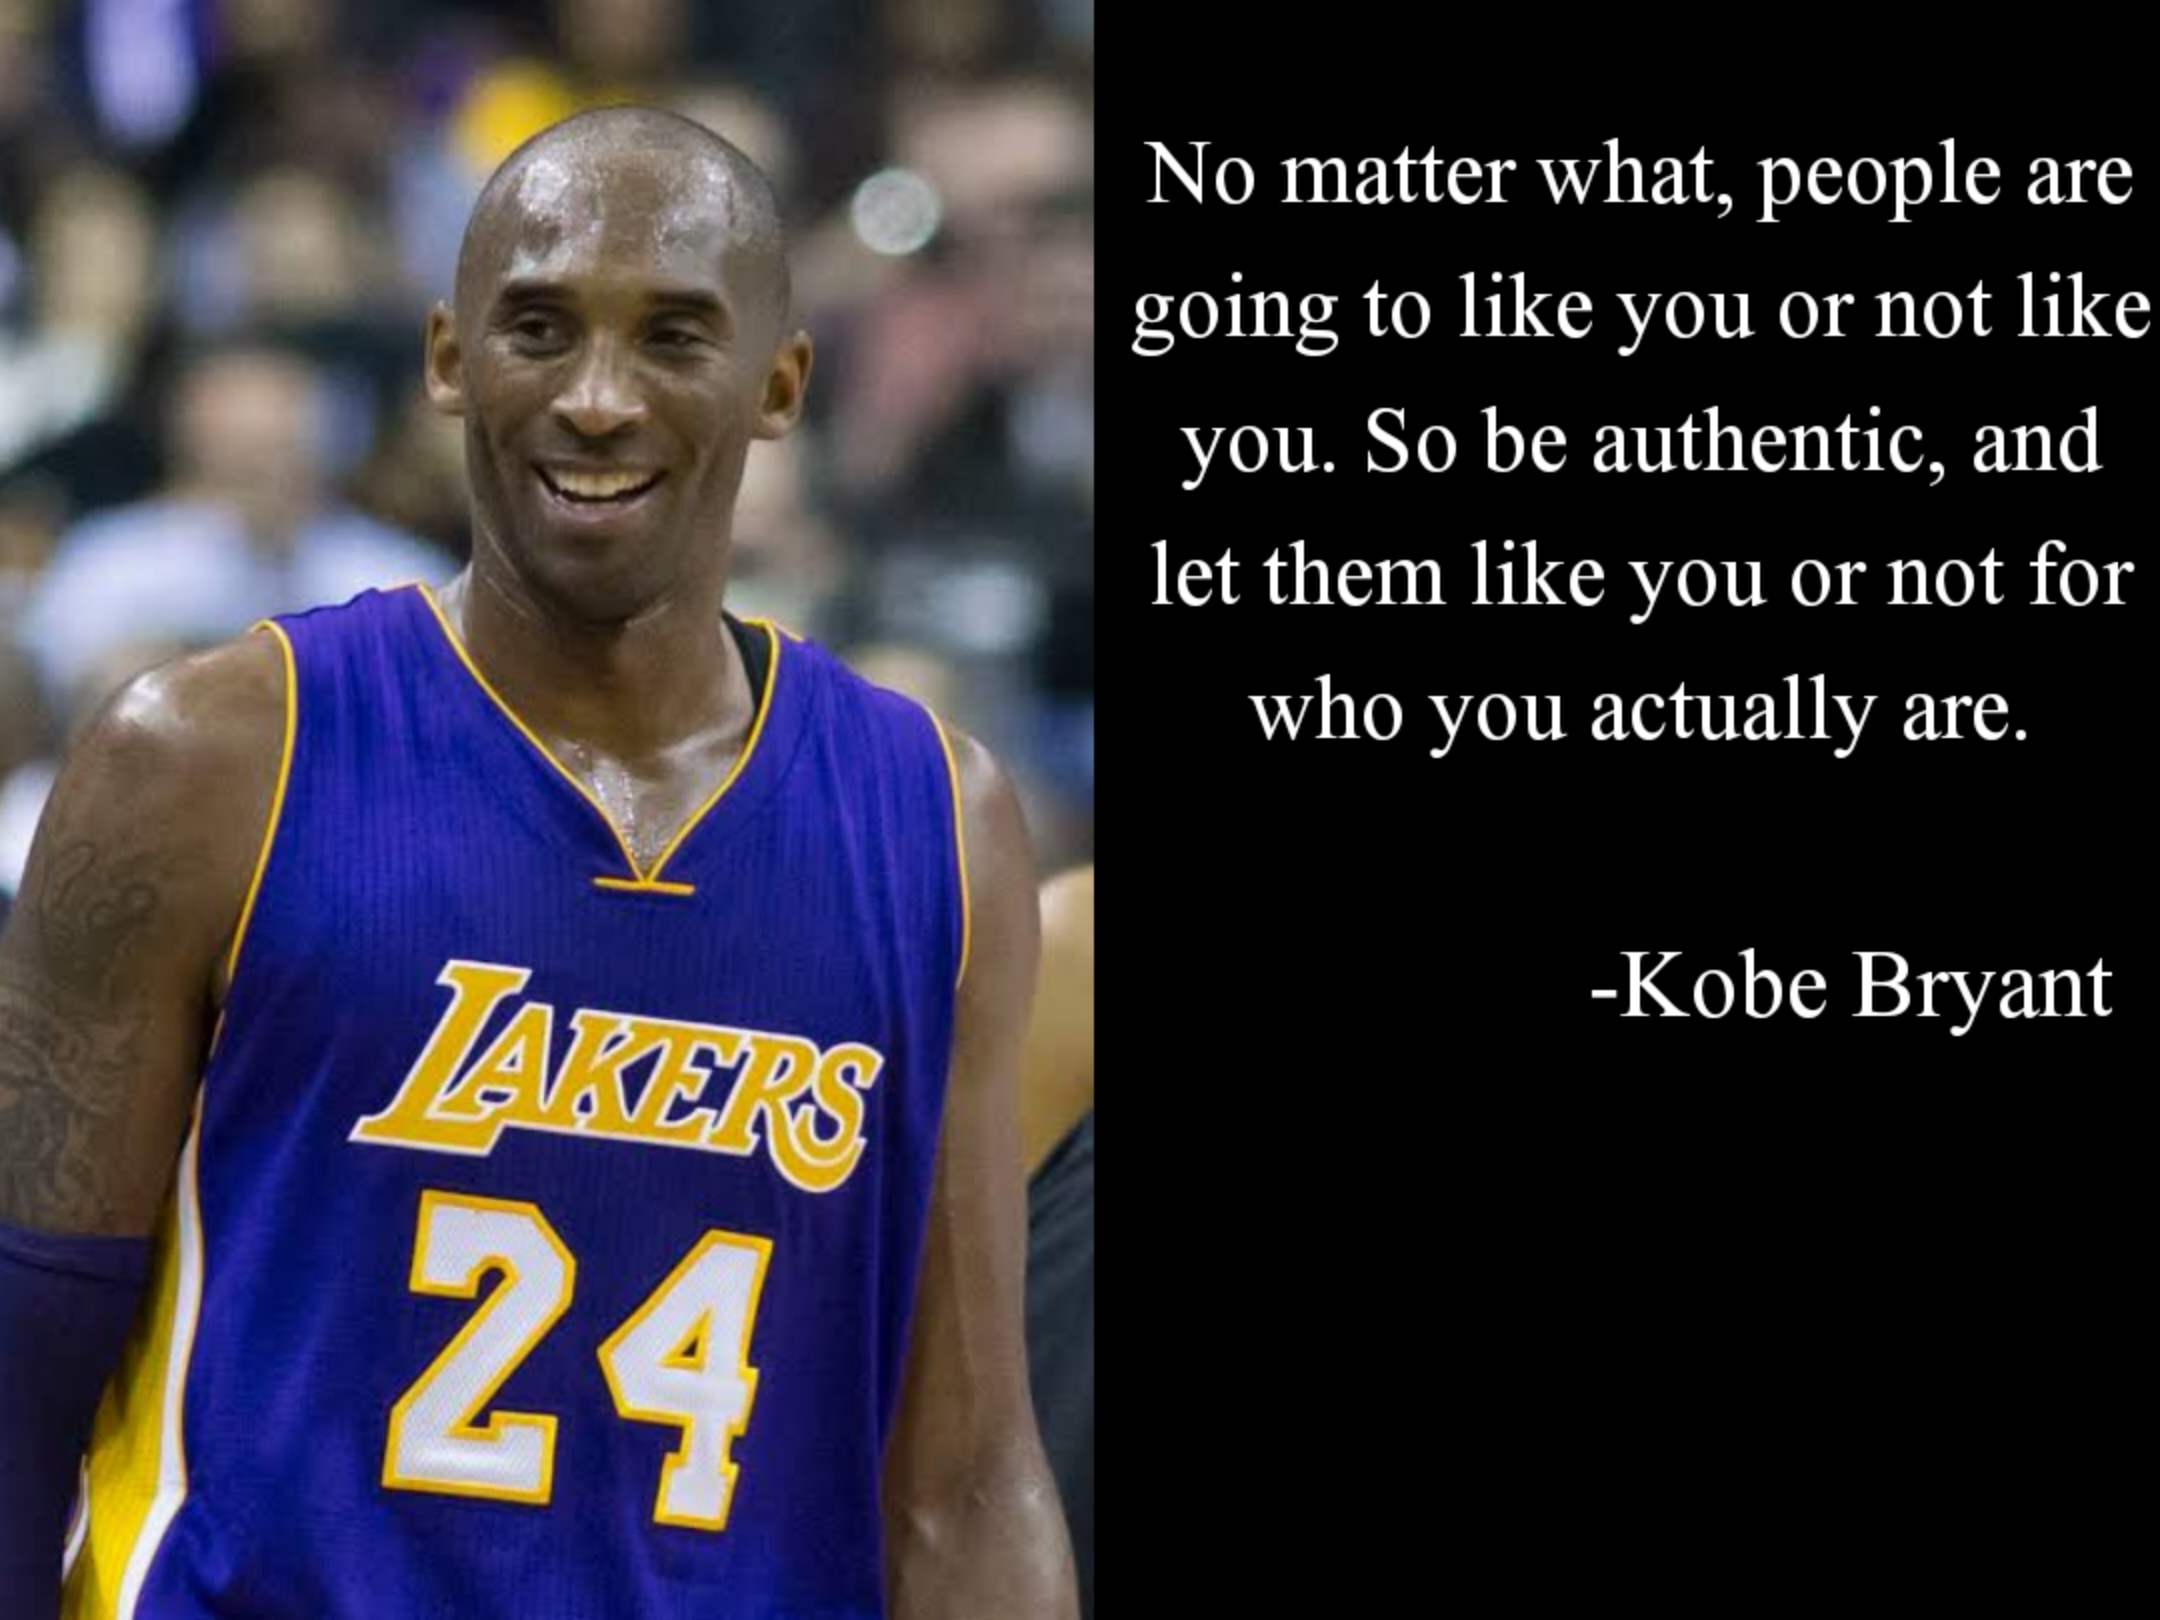 """No matter what, people are going to like you or not like you. So be authentic, and let them like you or not for who you actually are."" -Kobe Bryant [OC] [2160×1620]"